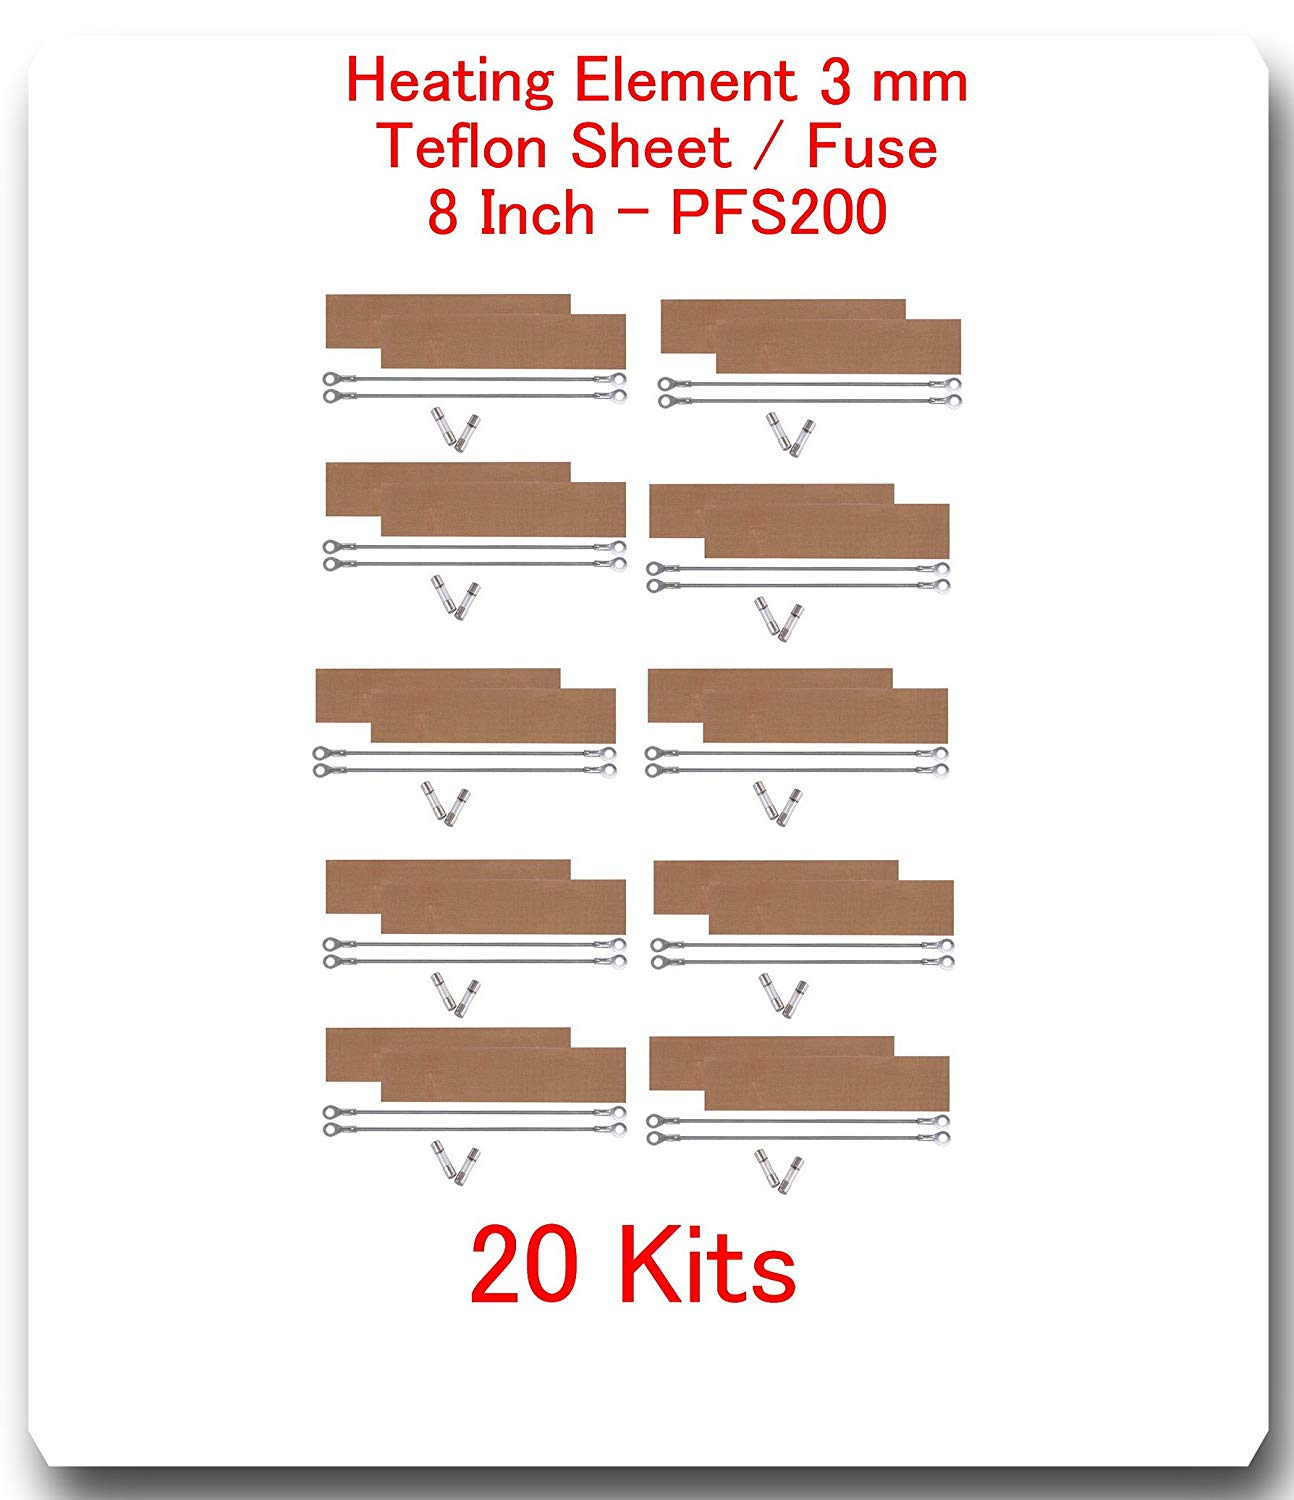 "(20 Kits) Replacement Elements for Impulse Sealer PFS-200 8""(20 Heating Elements 3 mm+ 20 Teflon Sheets)"